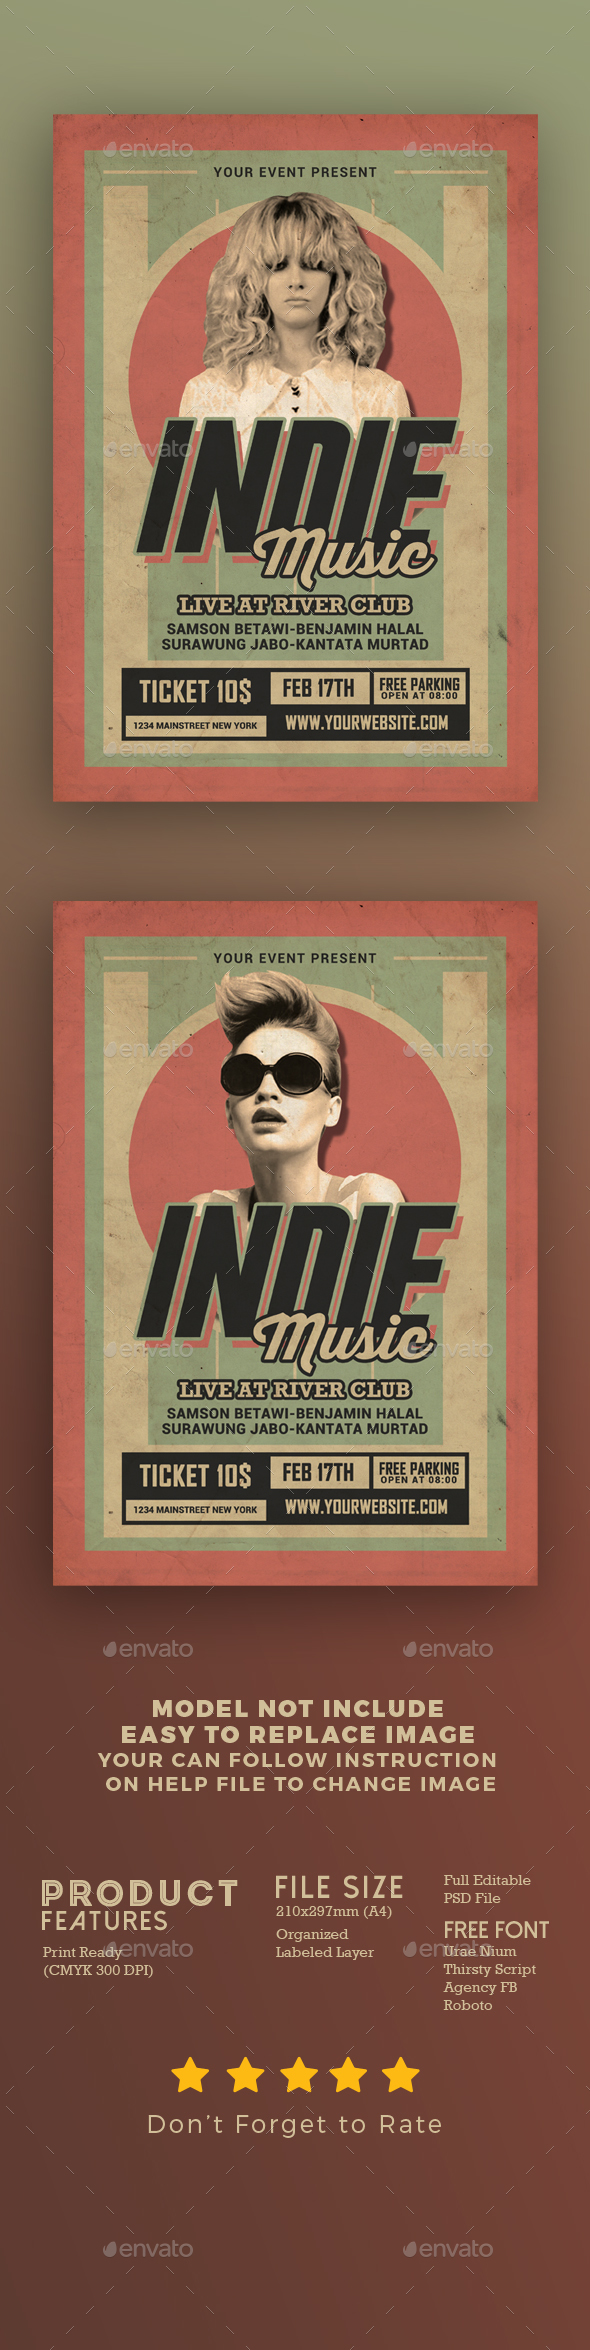 Indie Music Retro - Events Flyers